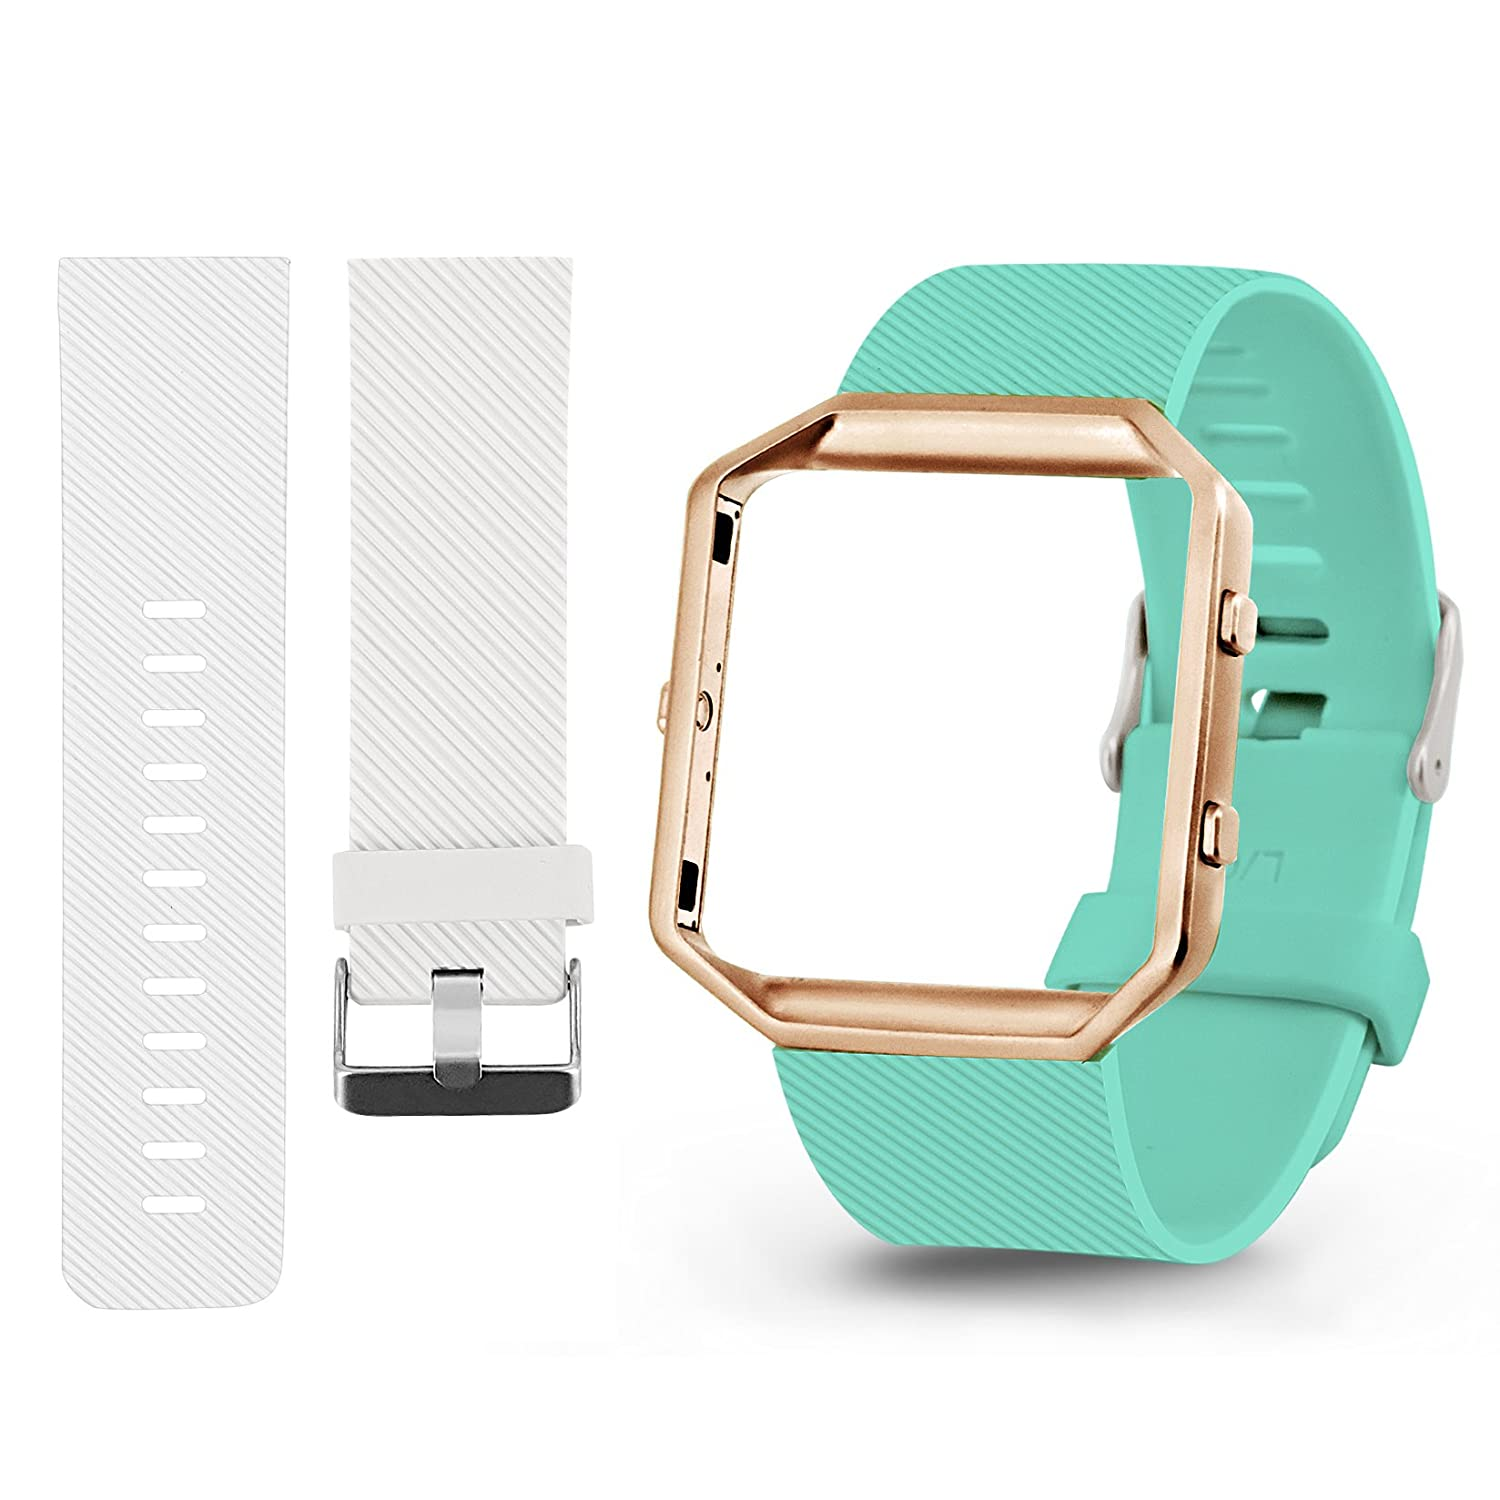 fundro Fitbit Blaze Bands withフレーム、フレーム付きシリコン交換用バンドストラップケースfor Fitbit Blaze Smart Fitness Watch, Small/Large Large (6.7\ A# 2-Pack (White+Teal With Rose Gold Frame) B07C9XZRXX